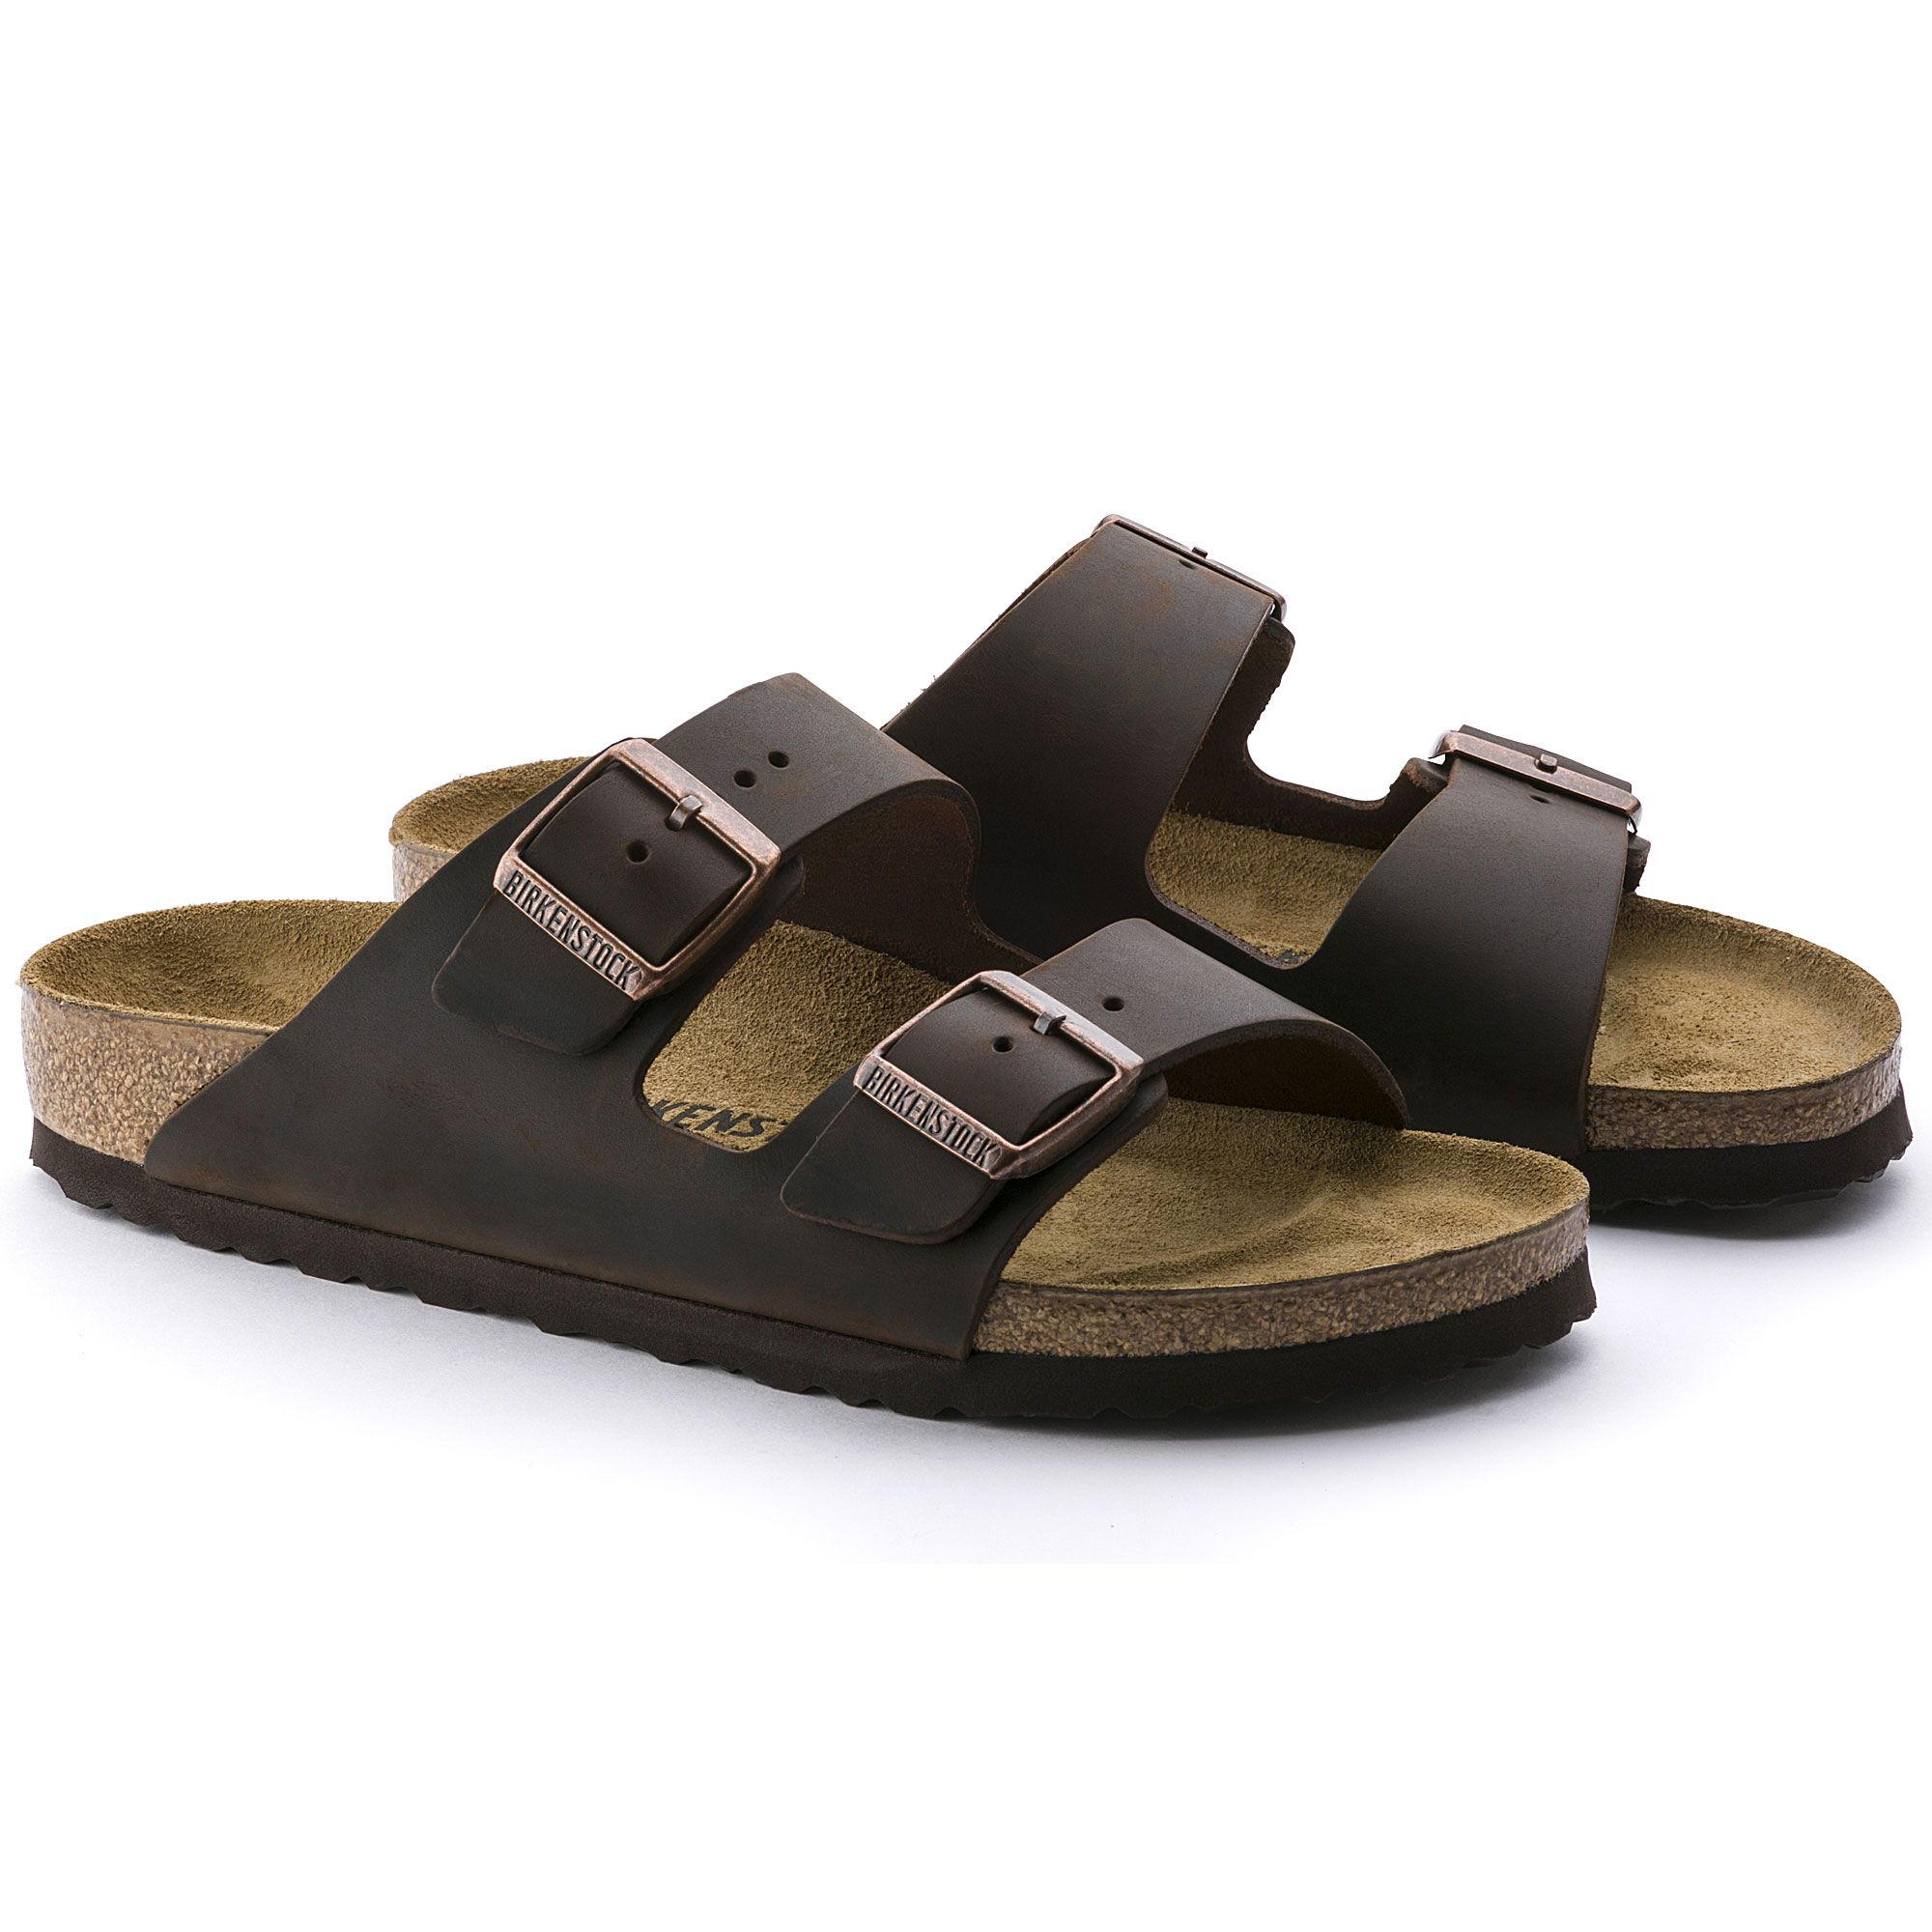 Arizona Oiled Leather Habana Birkenstock Cork Footbed Sandals Birkenstock Arizona